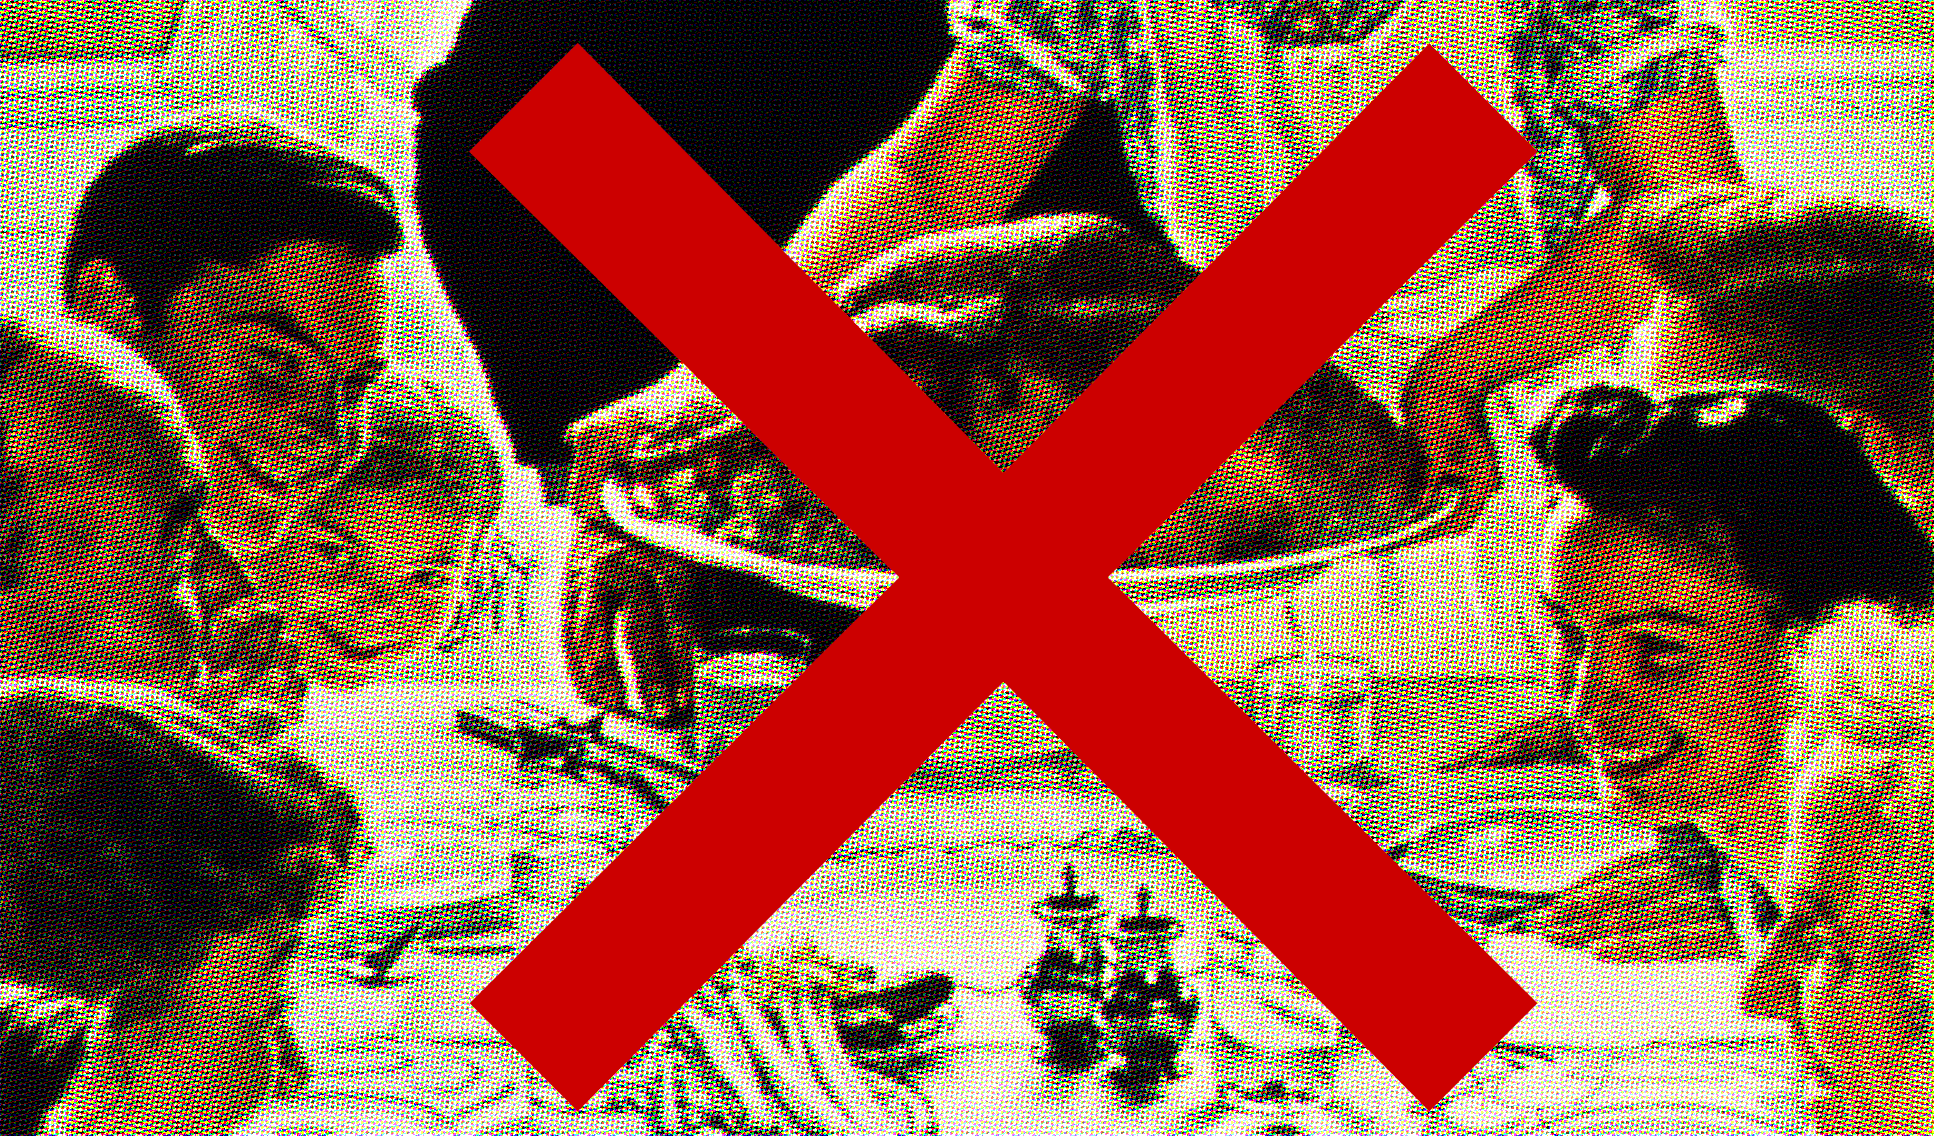 Cropped version of a Norman Rockwell painting of a family Thanksgiving dinner. A red X is drawn over the image.